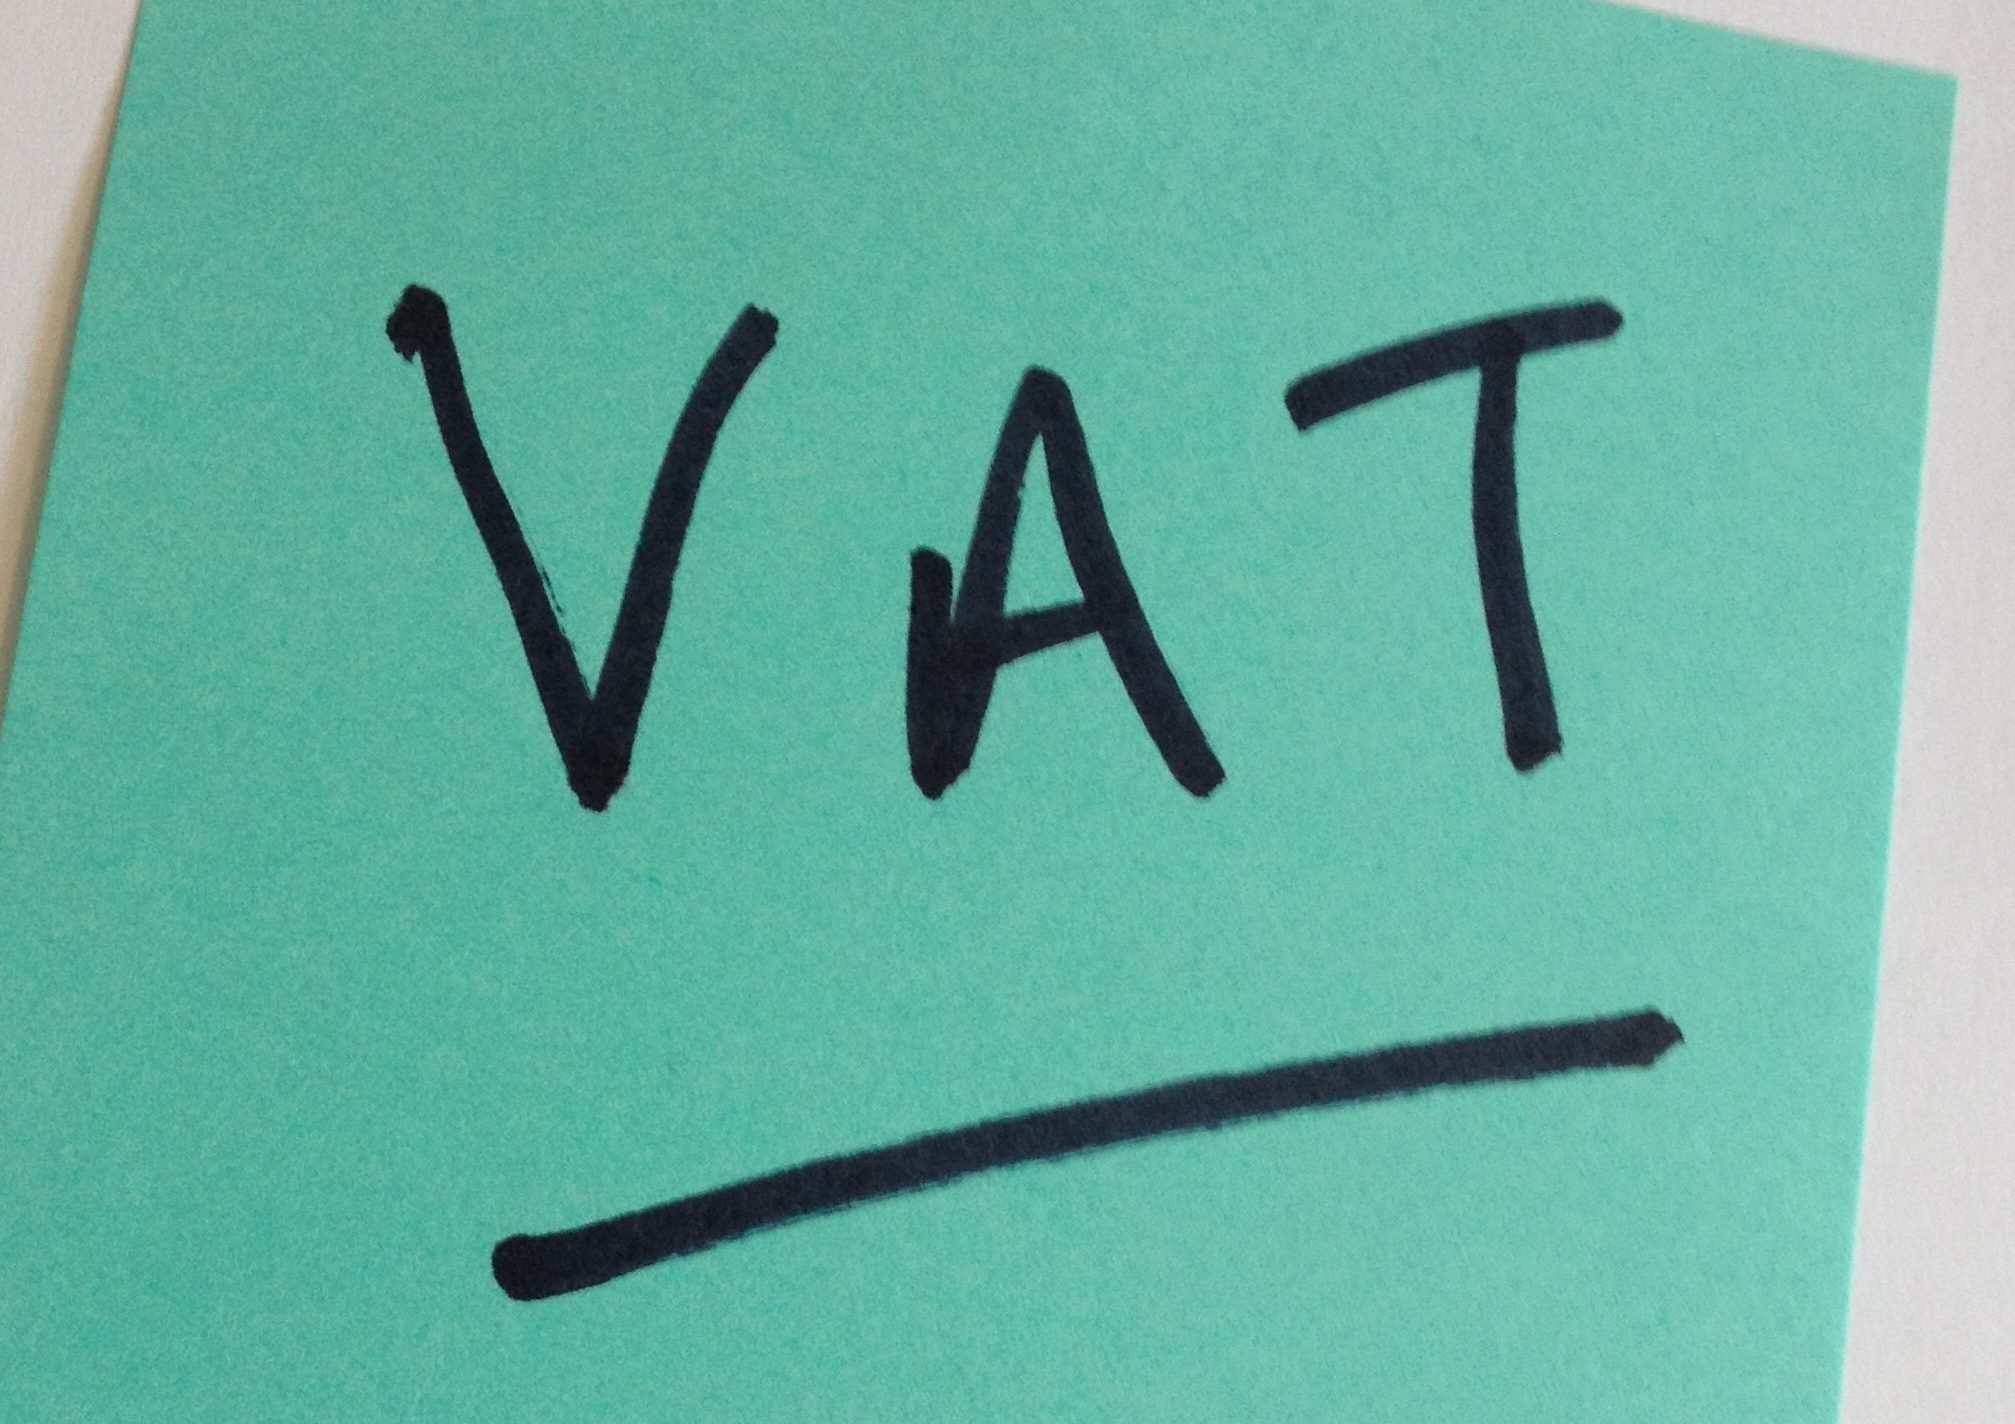 a post it with VAT written on it